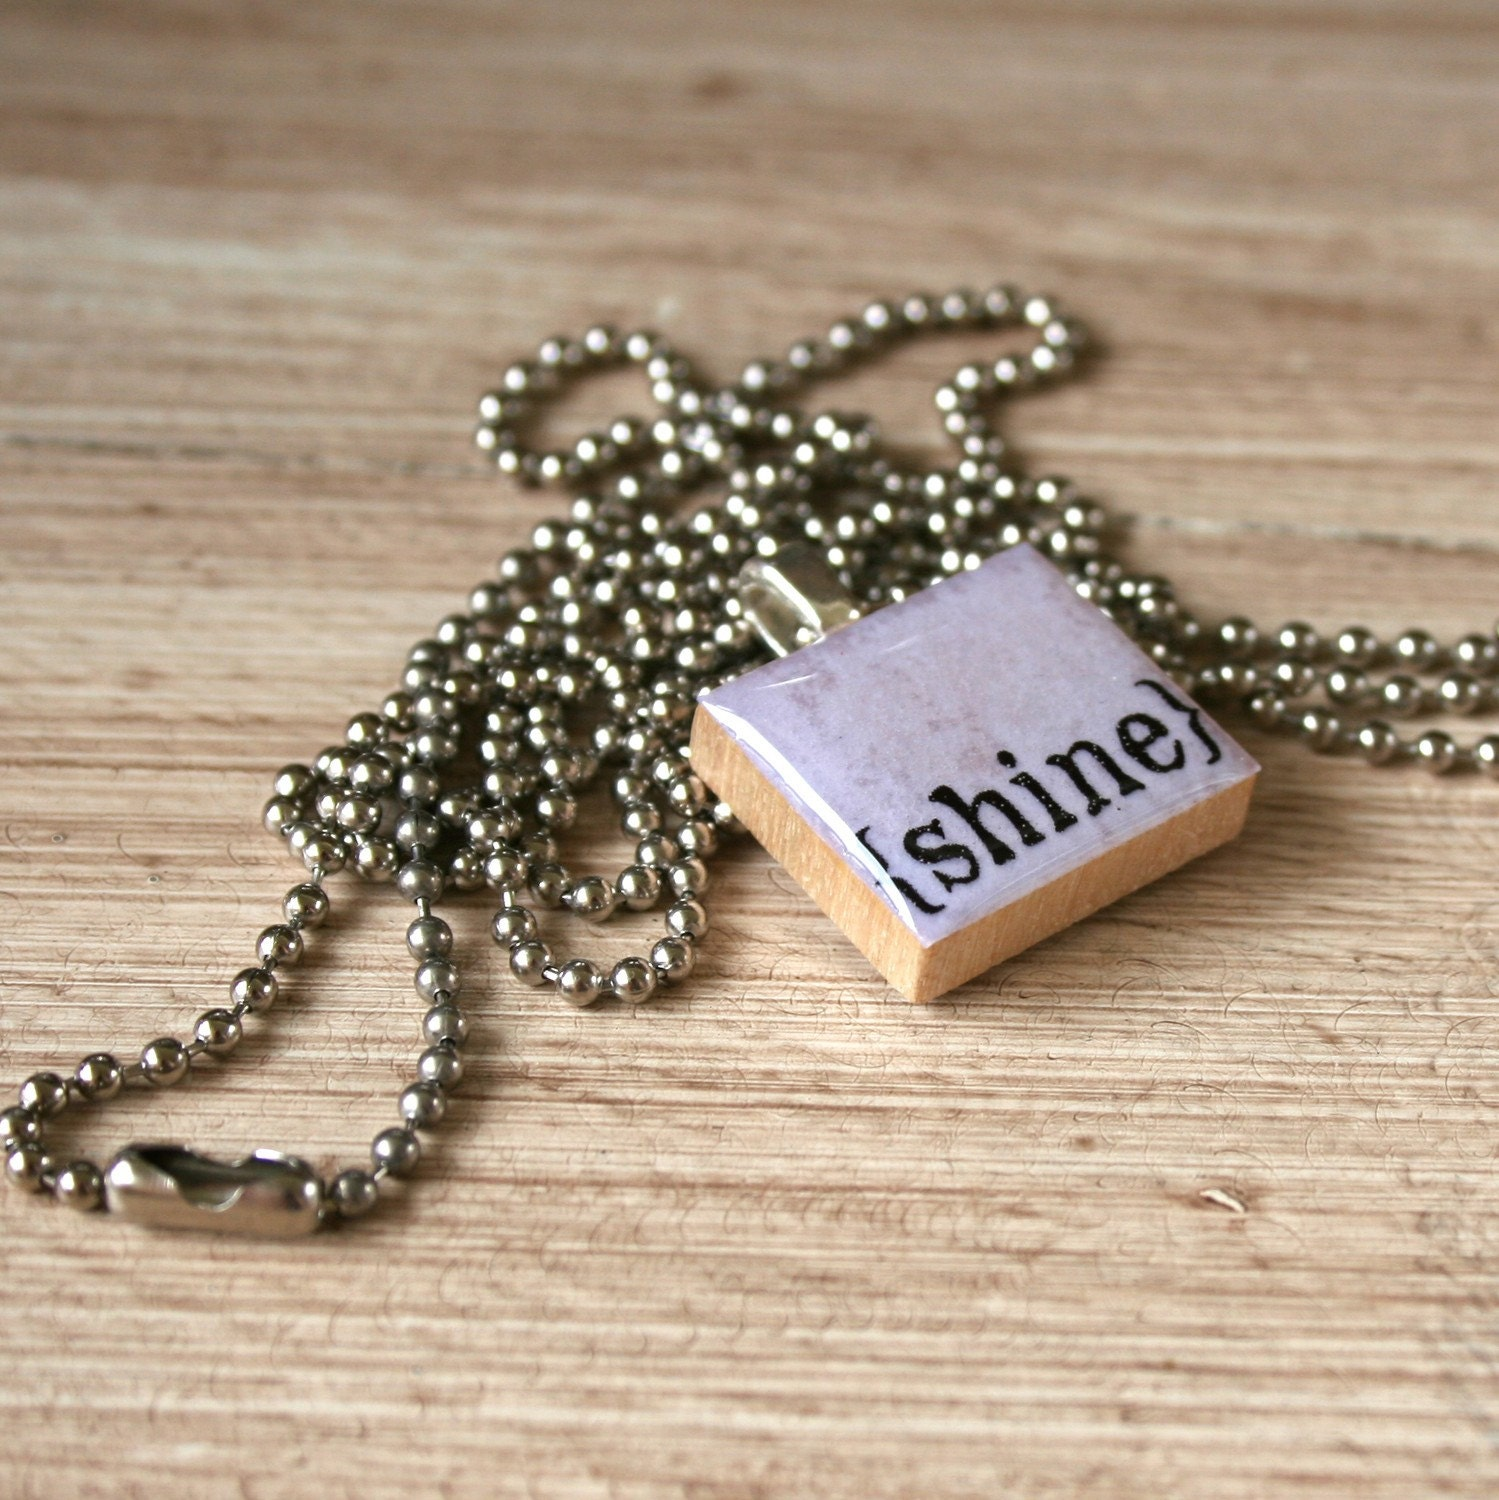 Scrabble (SHINE) necklace